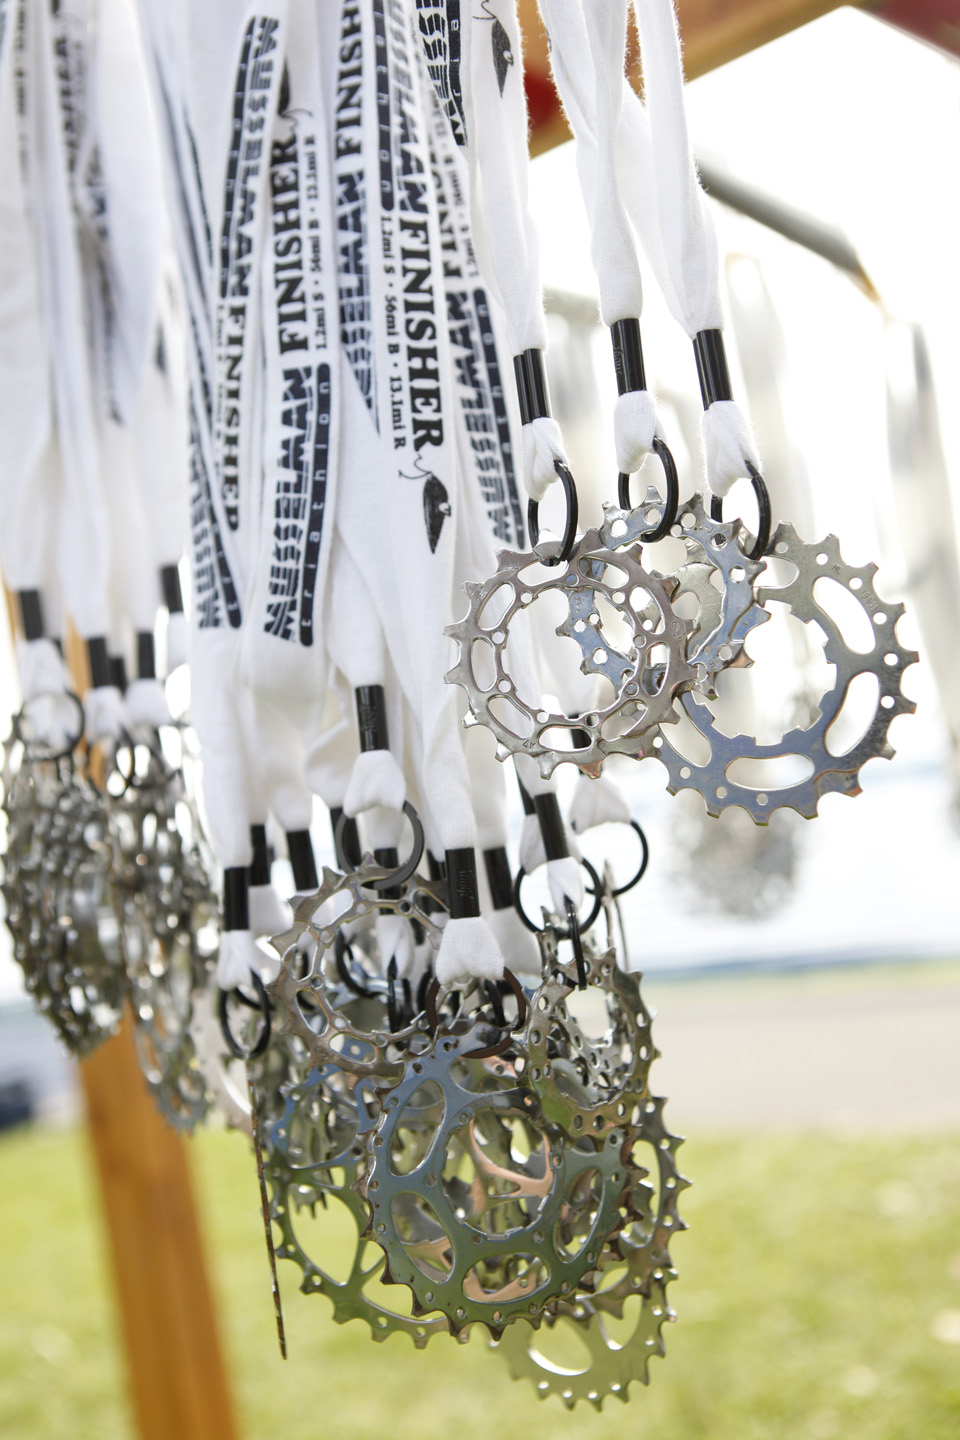 Since 2009, Musselman Triathlon has awarded finisher medals crafted from used bicycle cogs, a more sustainable choice than traditional race medals. Musselman Triathlon